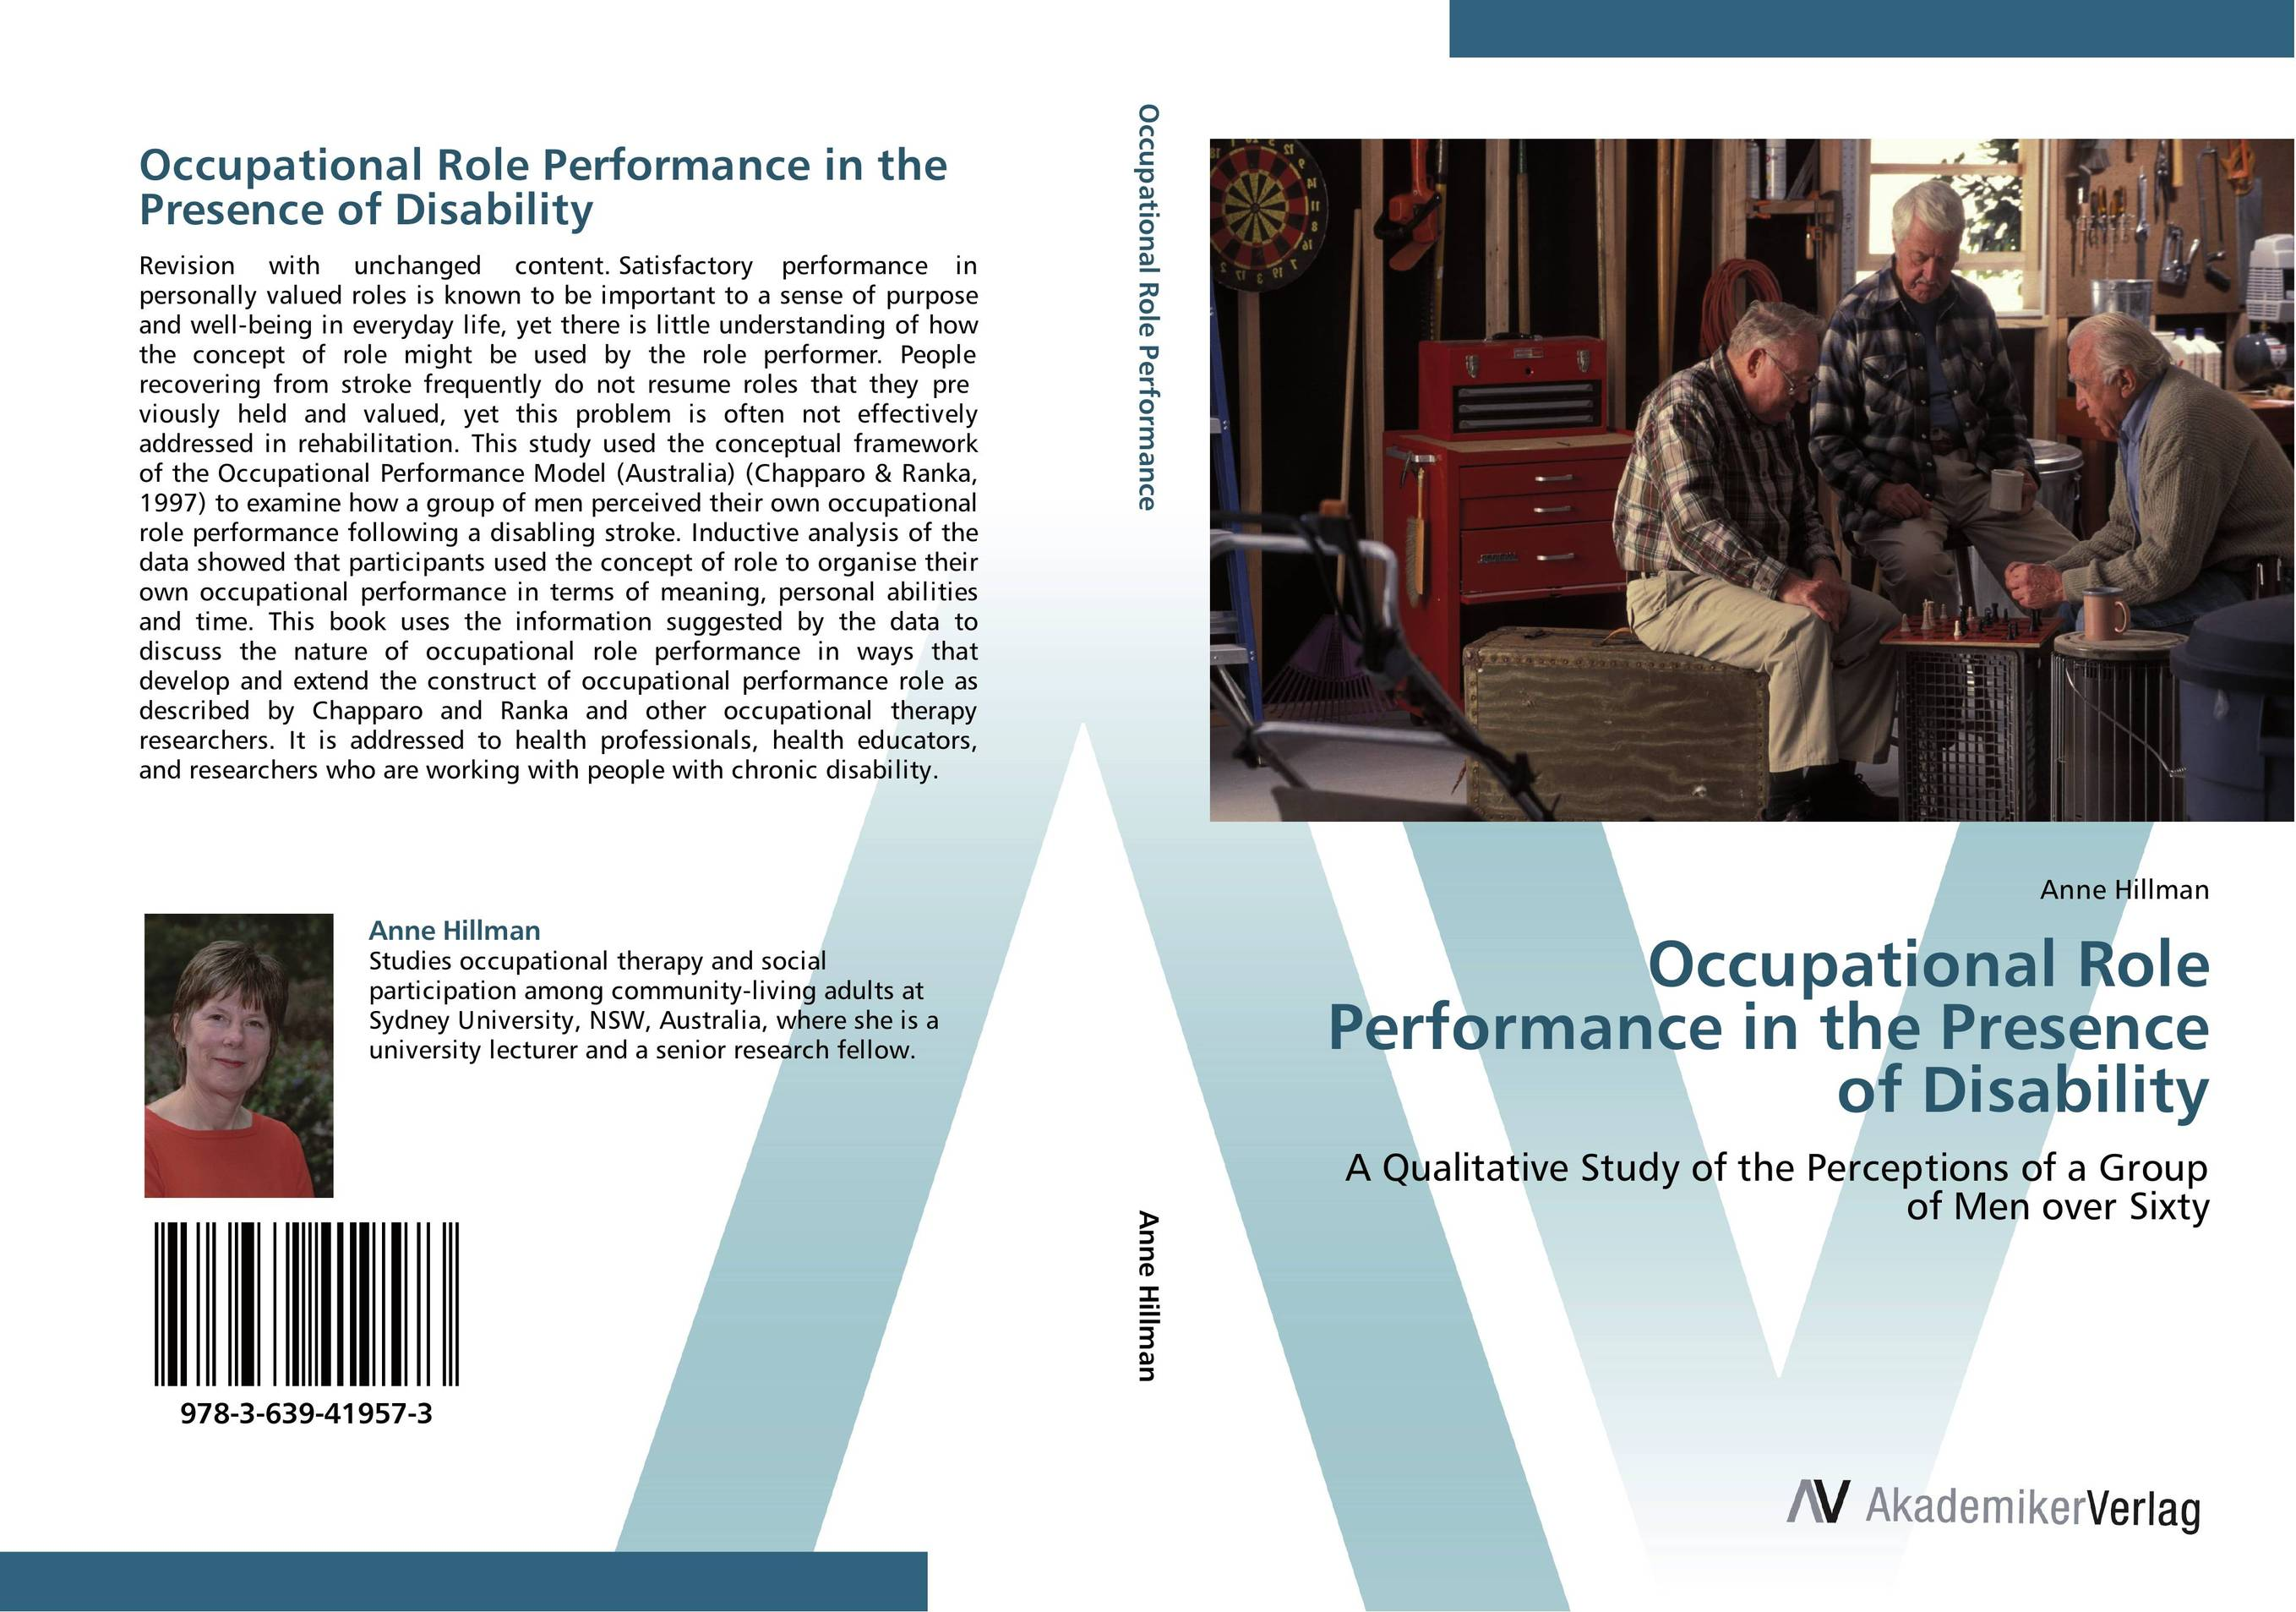 Occupational Role Performance in the Presence of Disability judi edmans occupational therapy and stroke